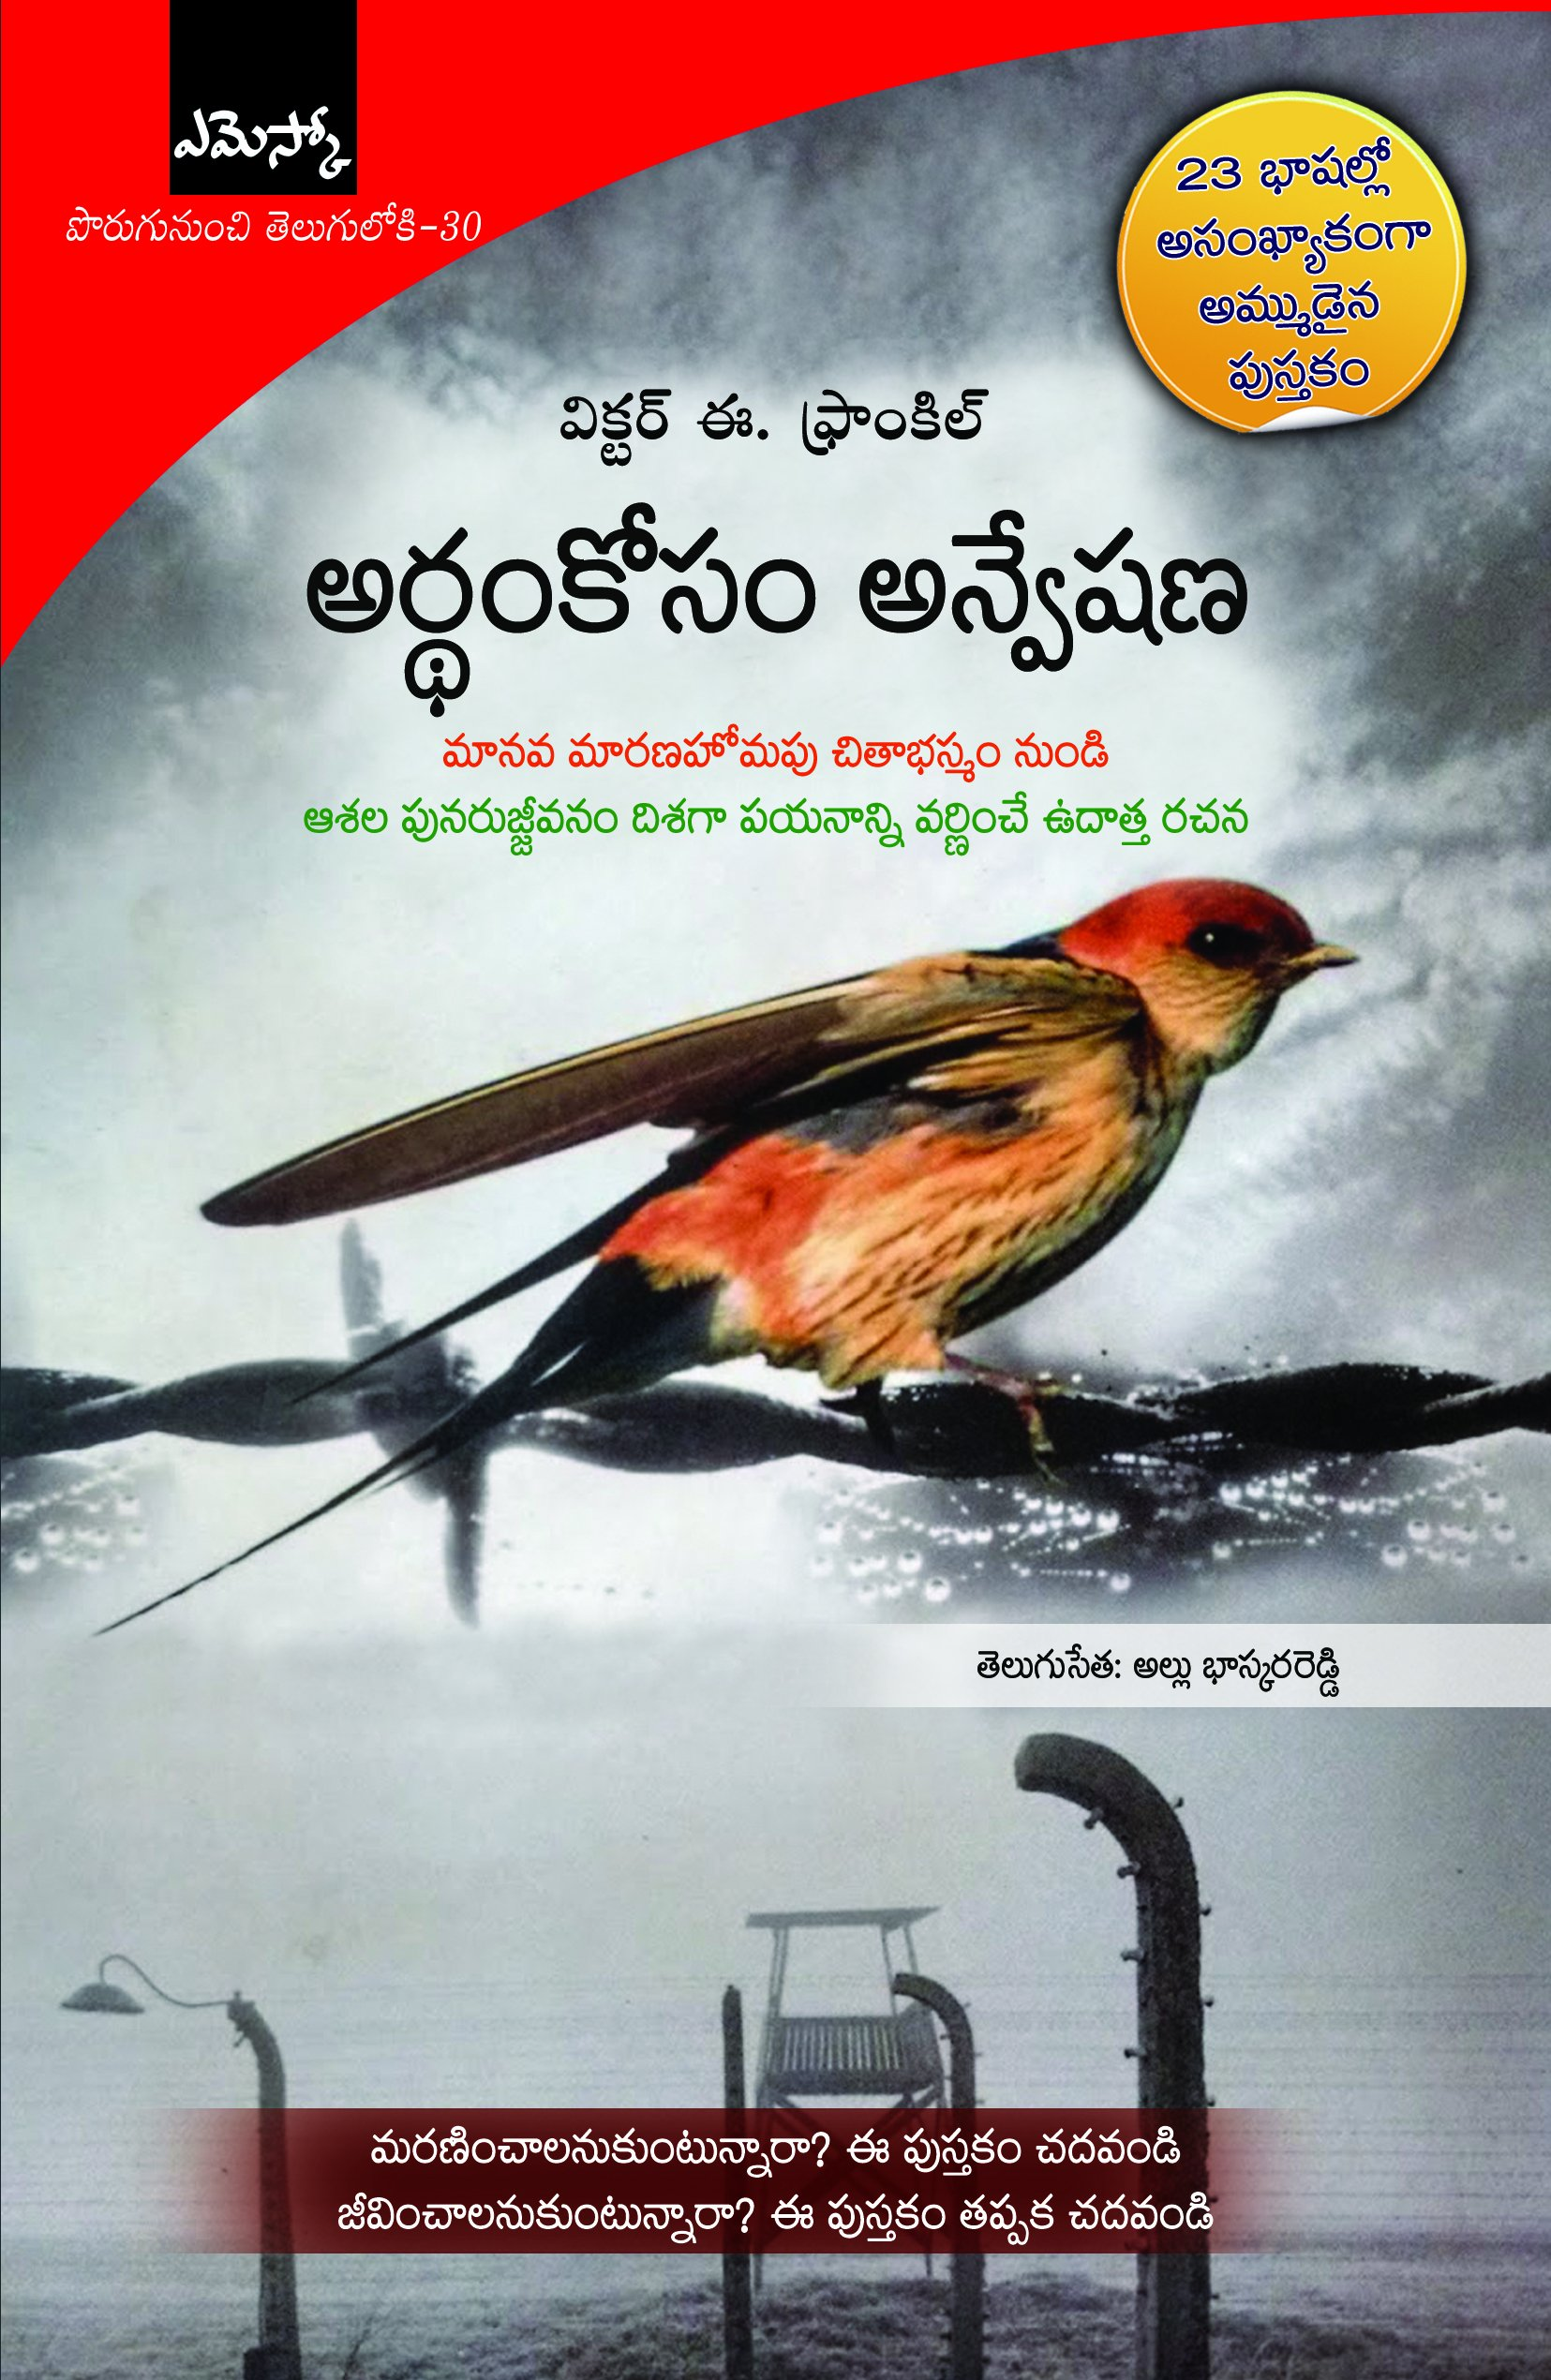 Buy Artham Koosam Anveshana అర థ క స అన వ షణ Book Online At Low Prices In India Artham Koosam Anveshana అర థ క స అన వ షణ Reviews Ratings Amazon In